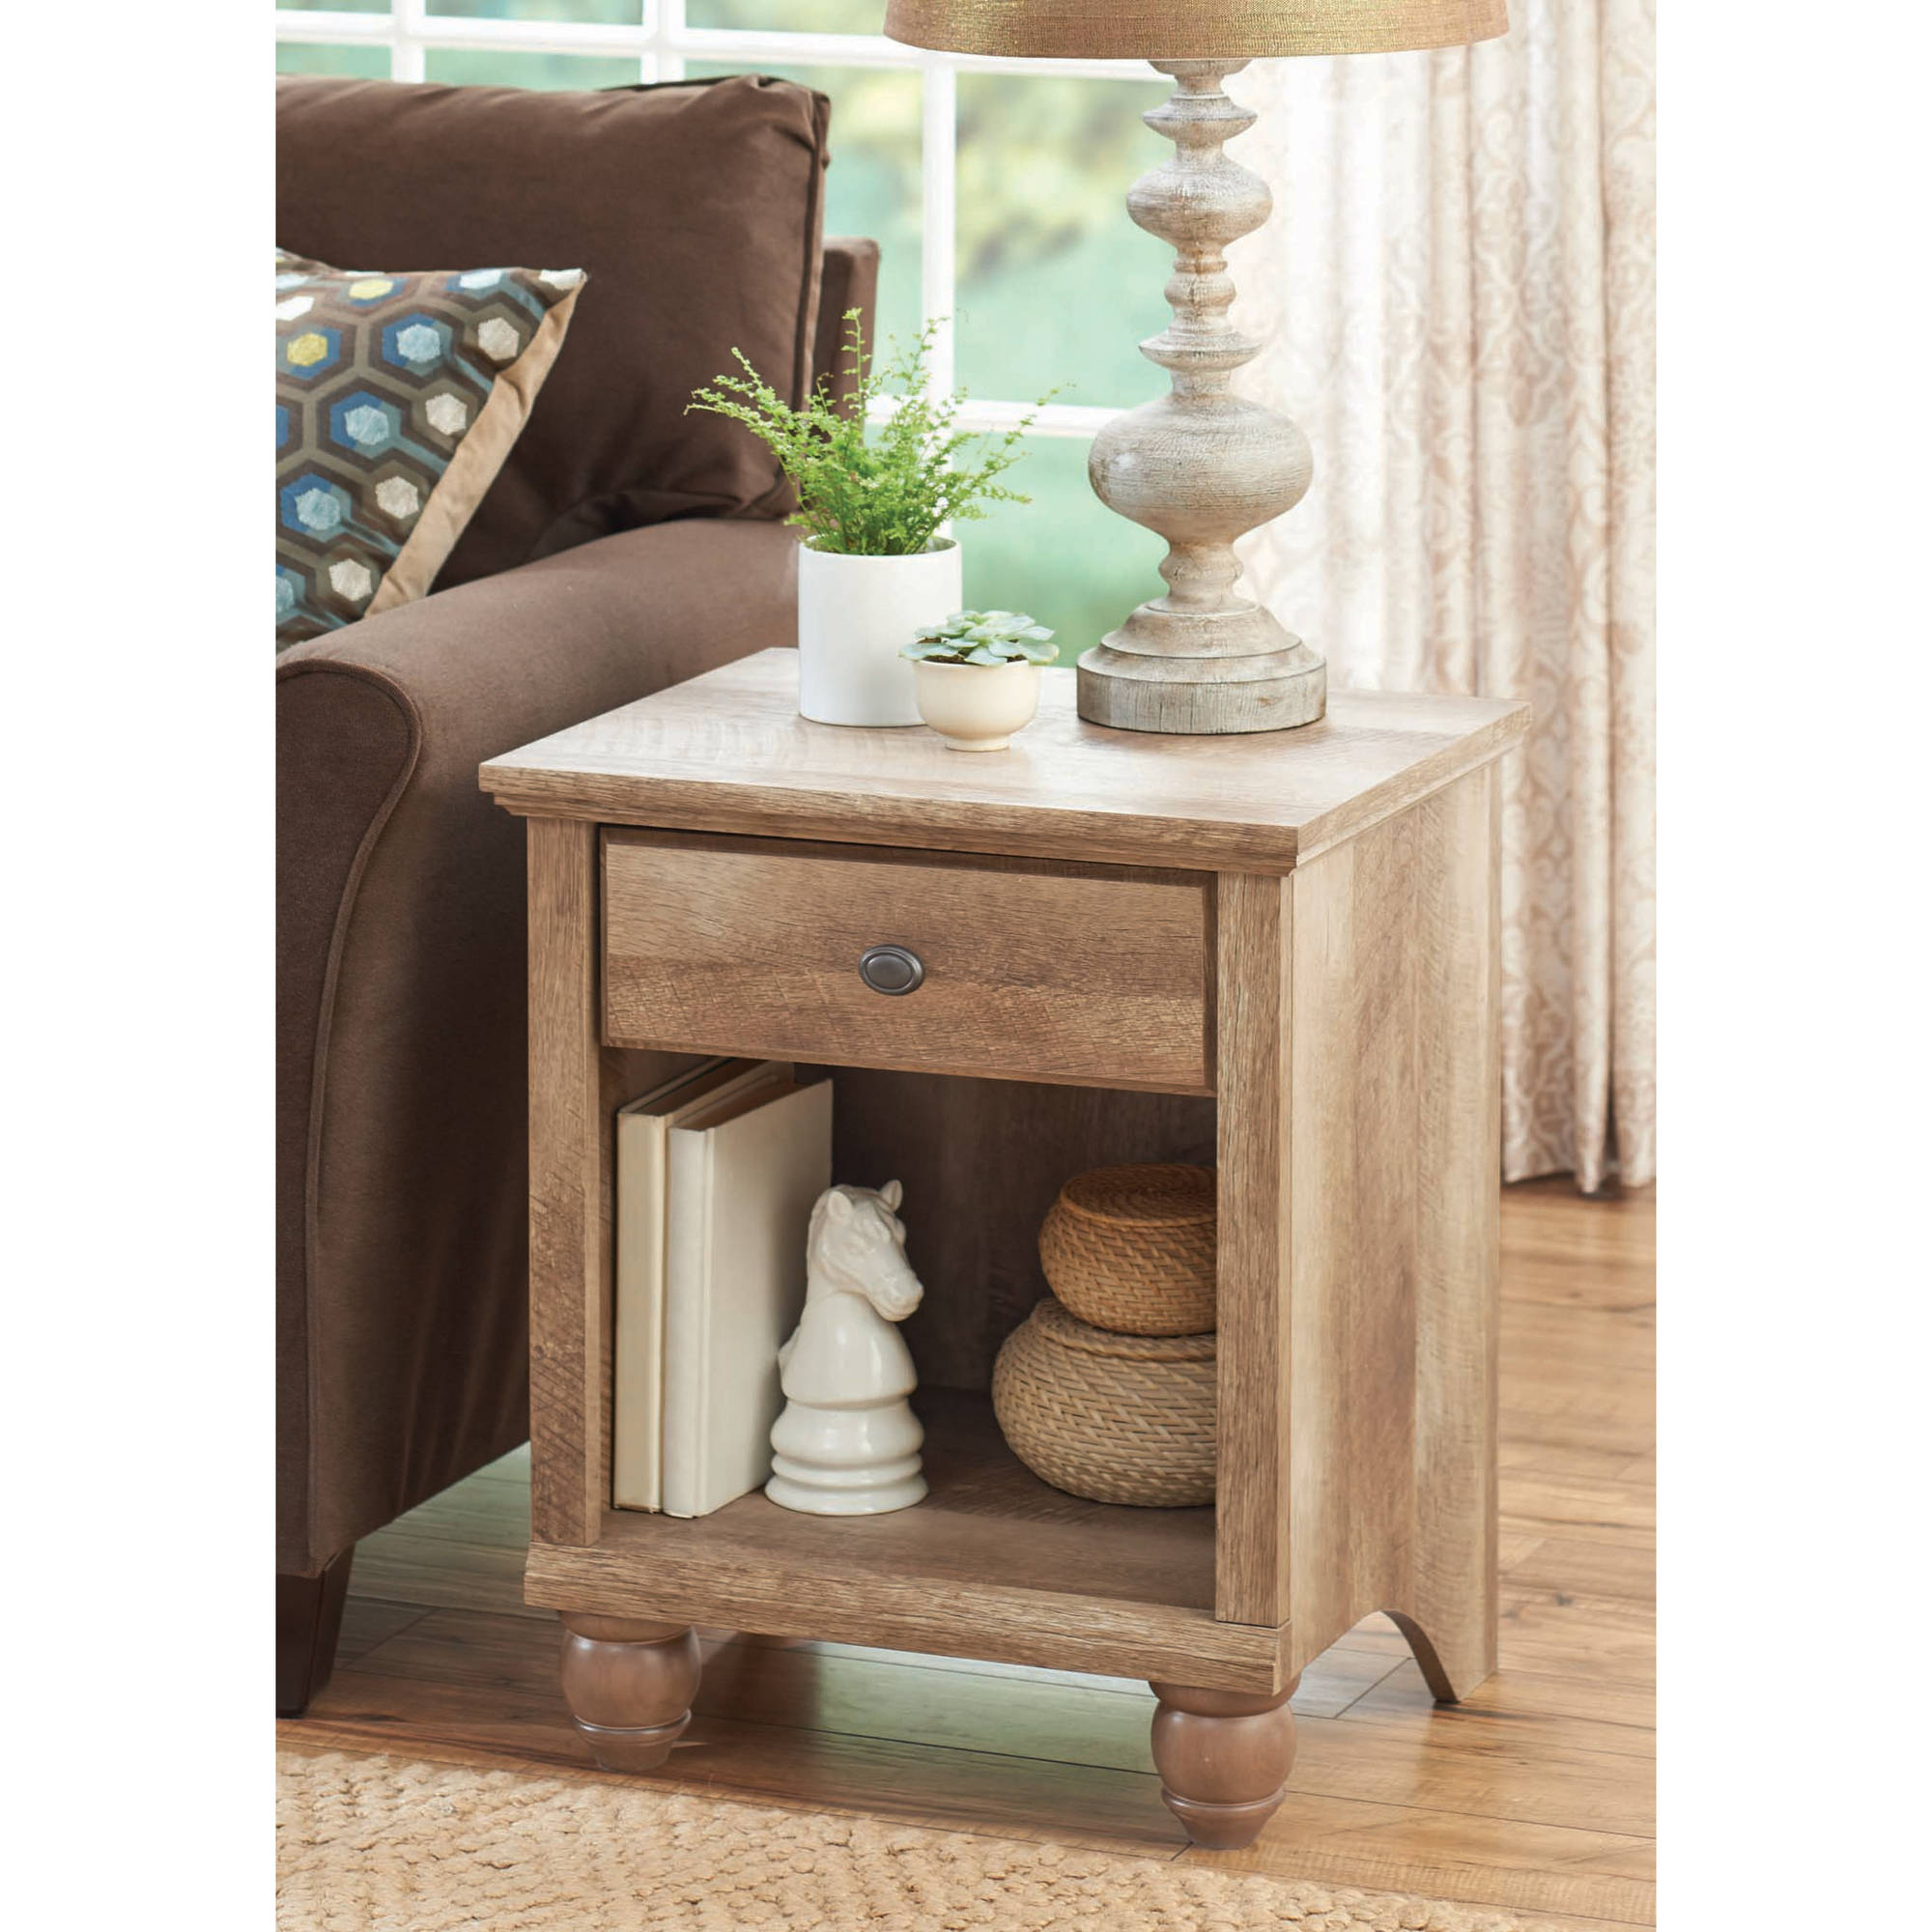 better homes gardens crossmill accent table weathered finish end tables rustic home decor narrow white coffee marble top inch wide nightstand and set second hand kitchens target